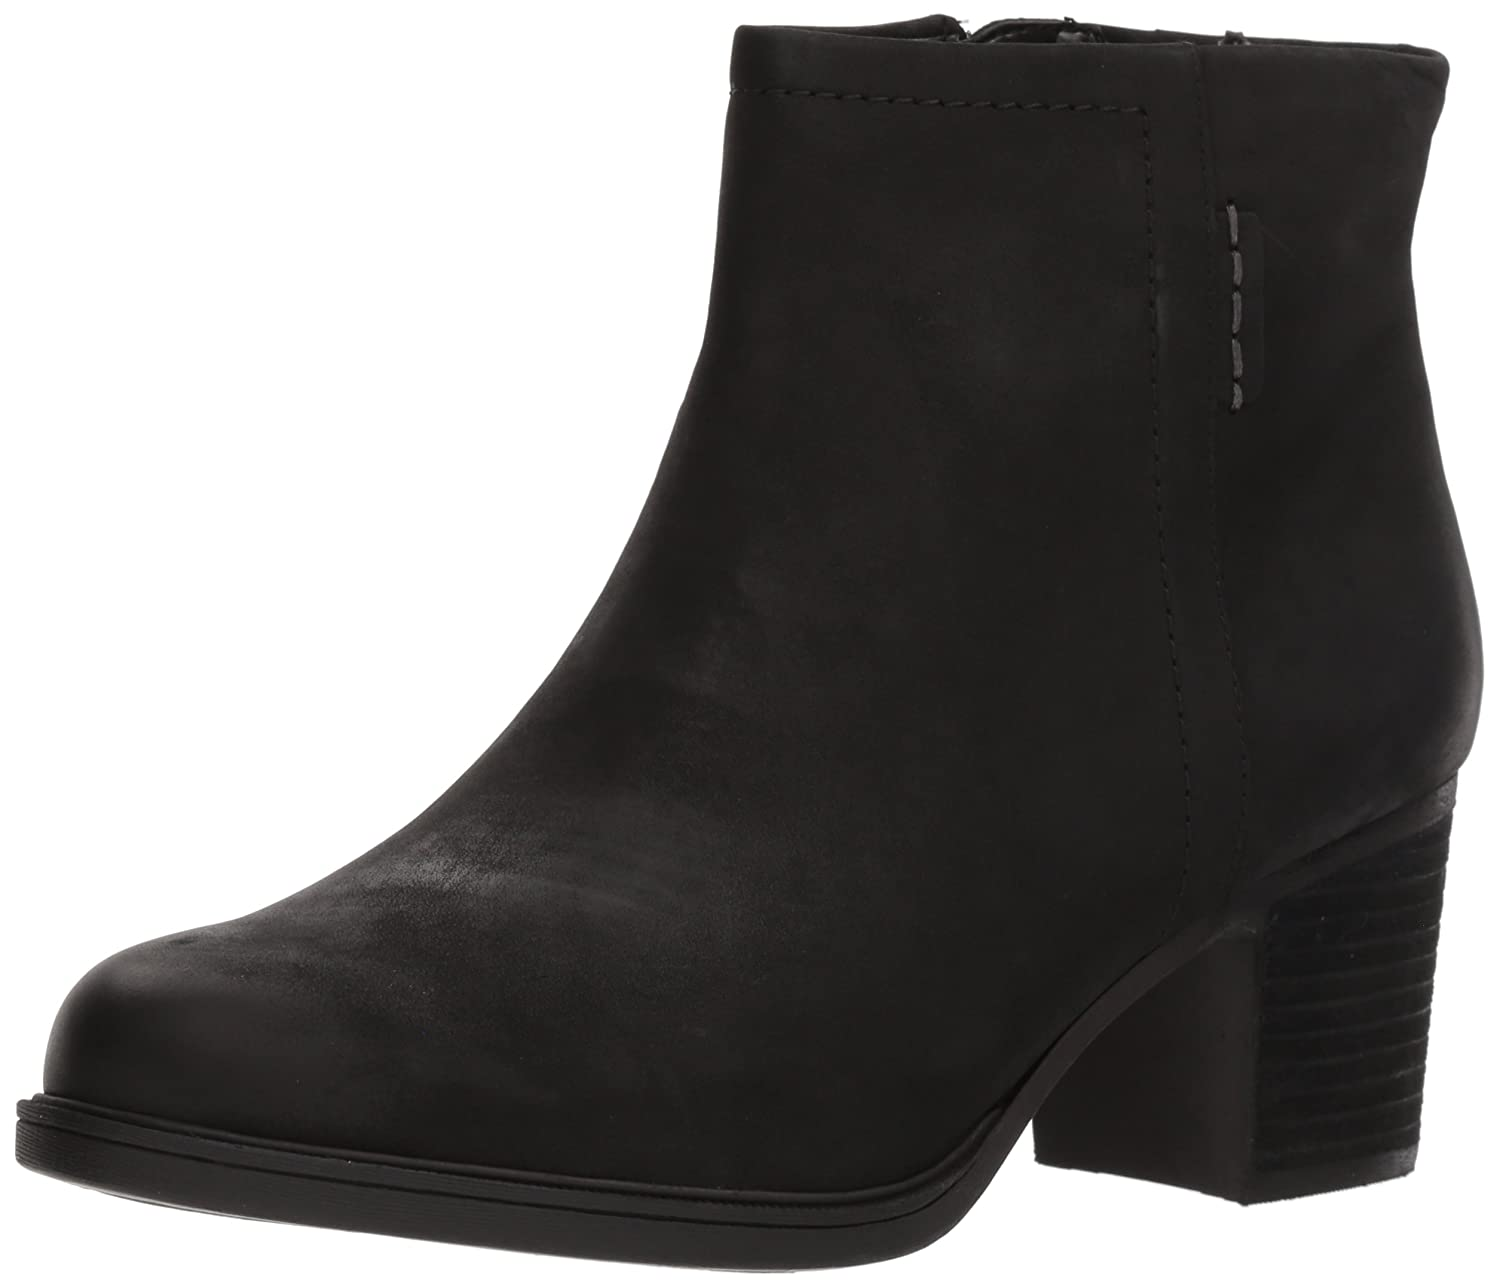 Cobb Hill Women's Natashya Bootie Ankle Boot B01MZIO8E6 7.5 W US|Black Nubuck